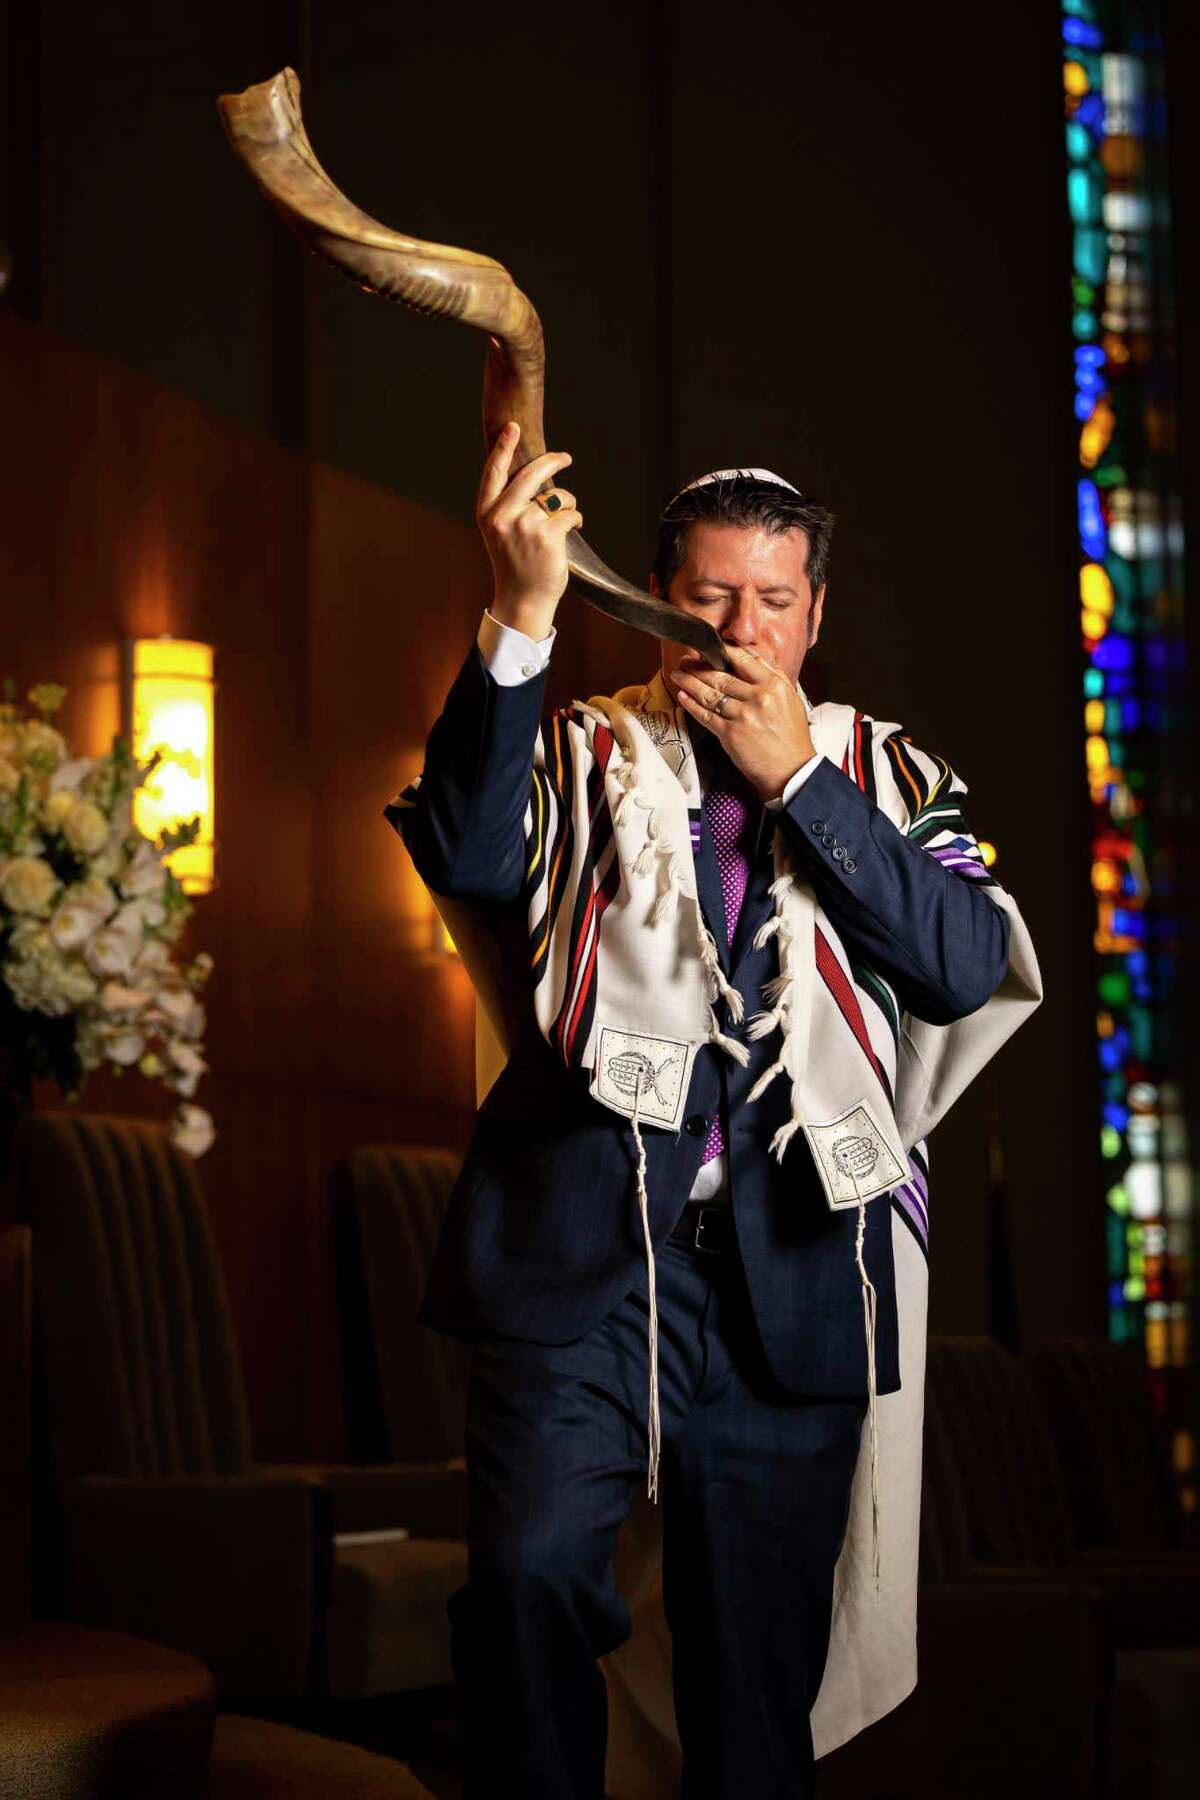 David Scott blows the shofar, a ram's horn that functions as a trumpet and calls Jewish people to worship for the new year at Congregation Beth Israel on Wednesday, Sept. 8, 2021. Scott is the director of lifelong learning and engagement at the synagogue and official shofar blower.